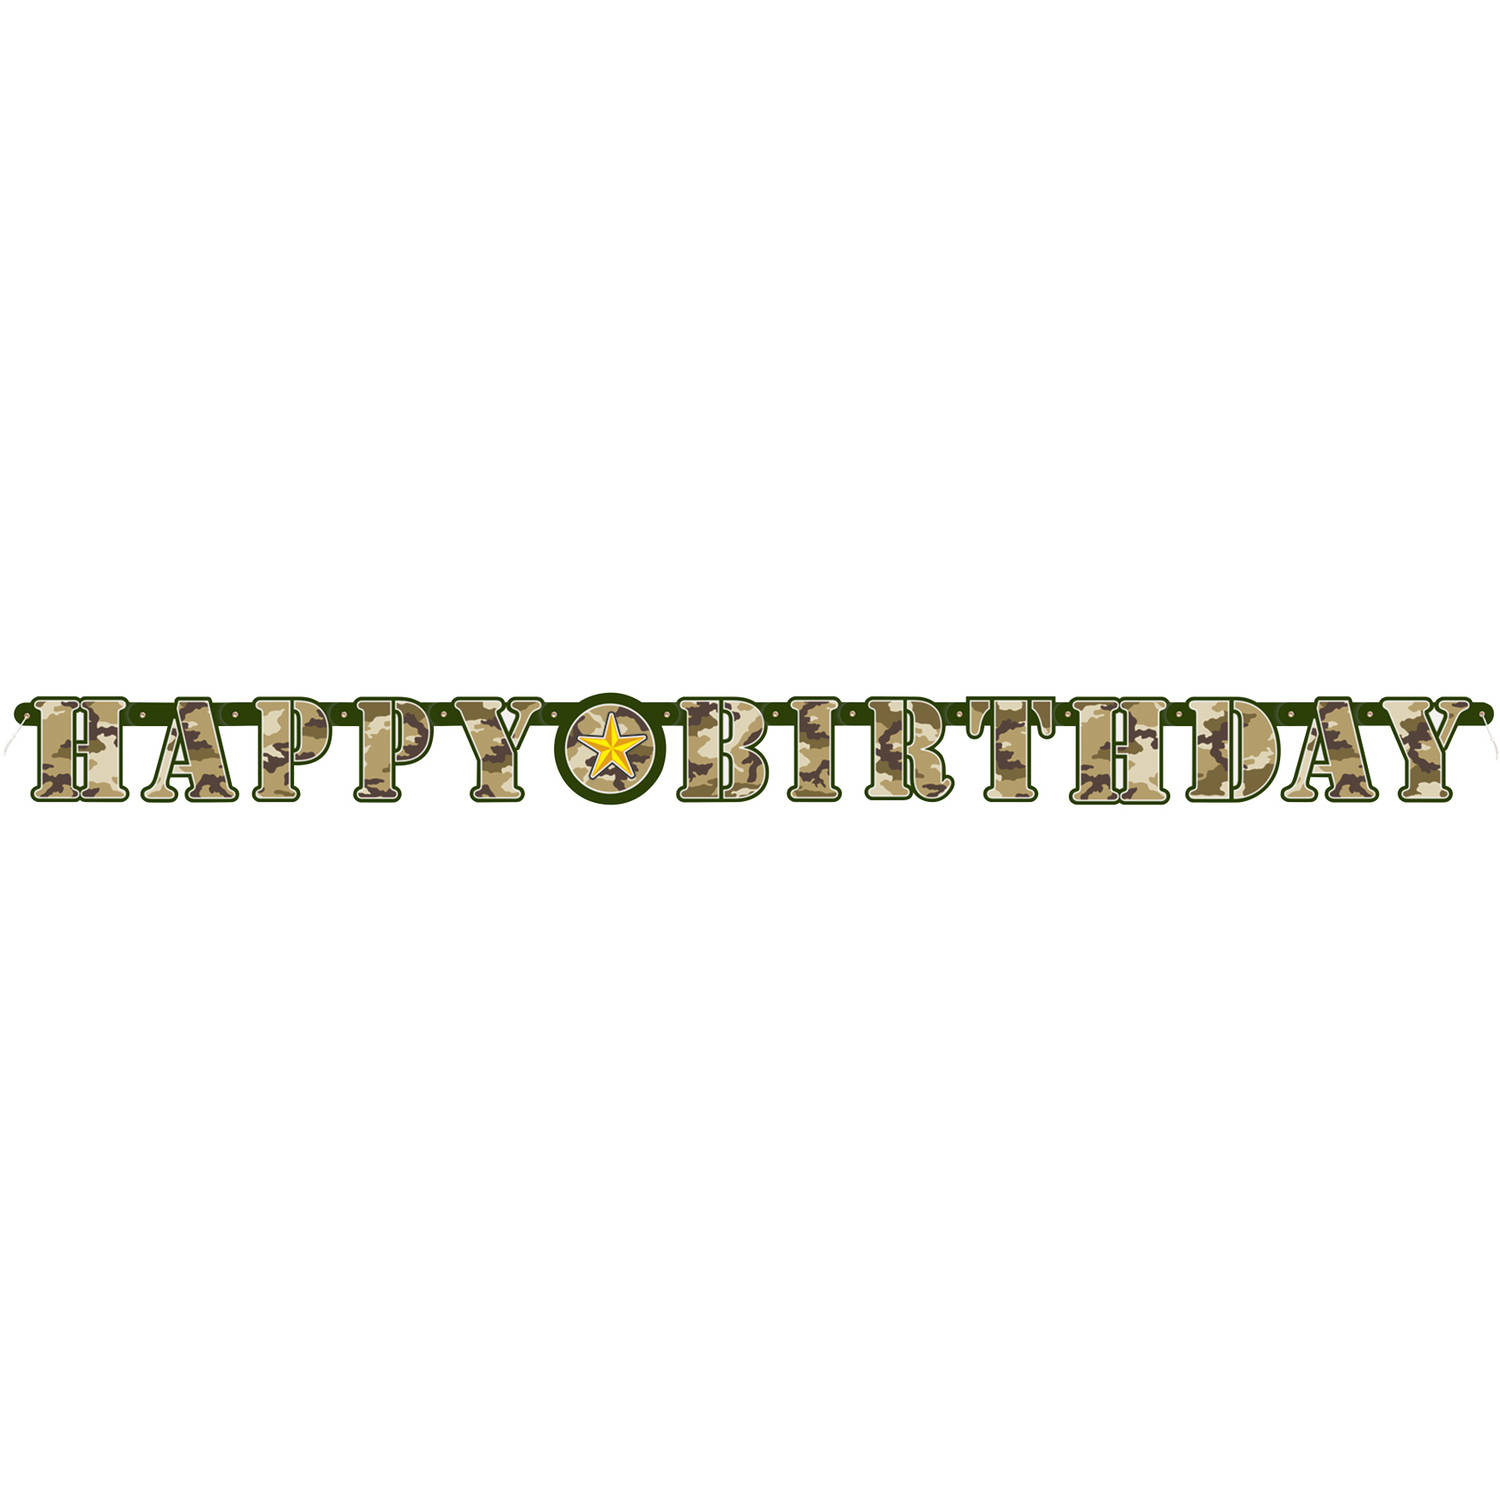 MILITARY CAMO 'HAPPY BIRTHDAY' JOINTED BANNER